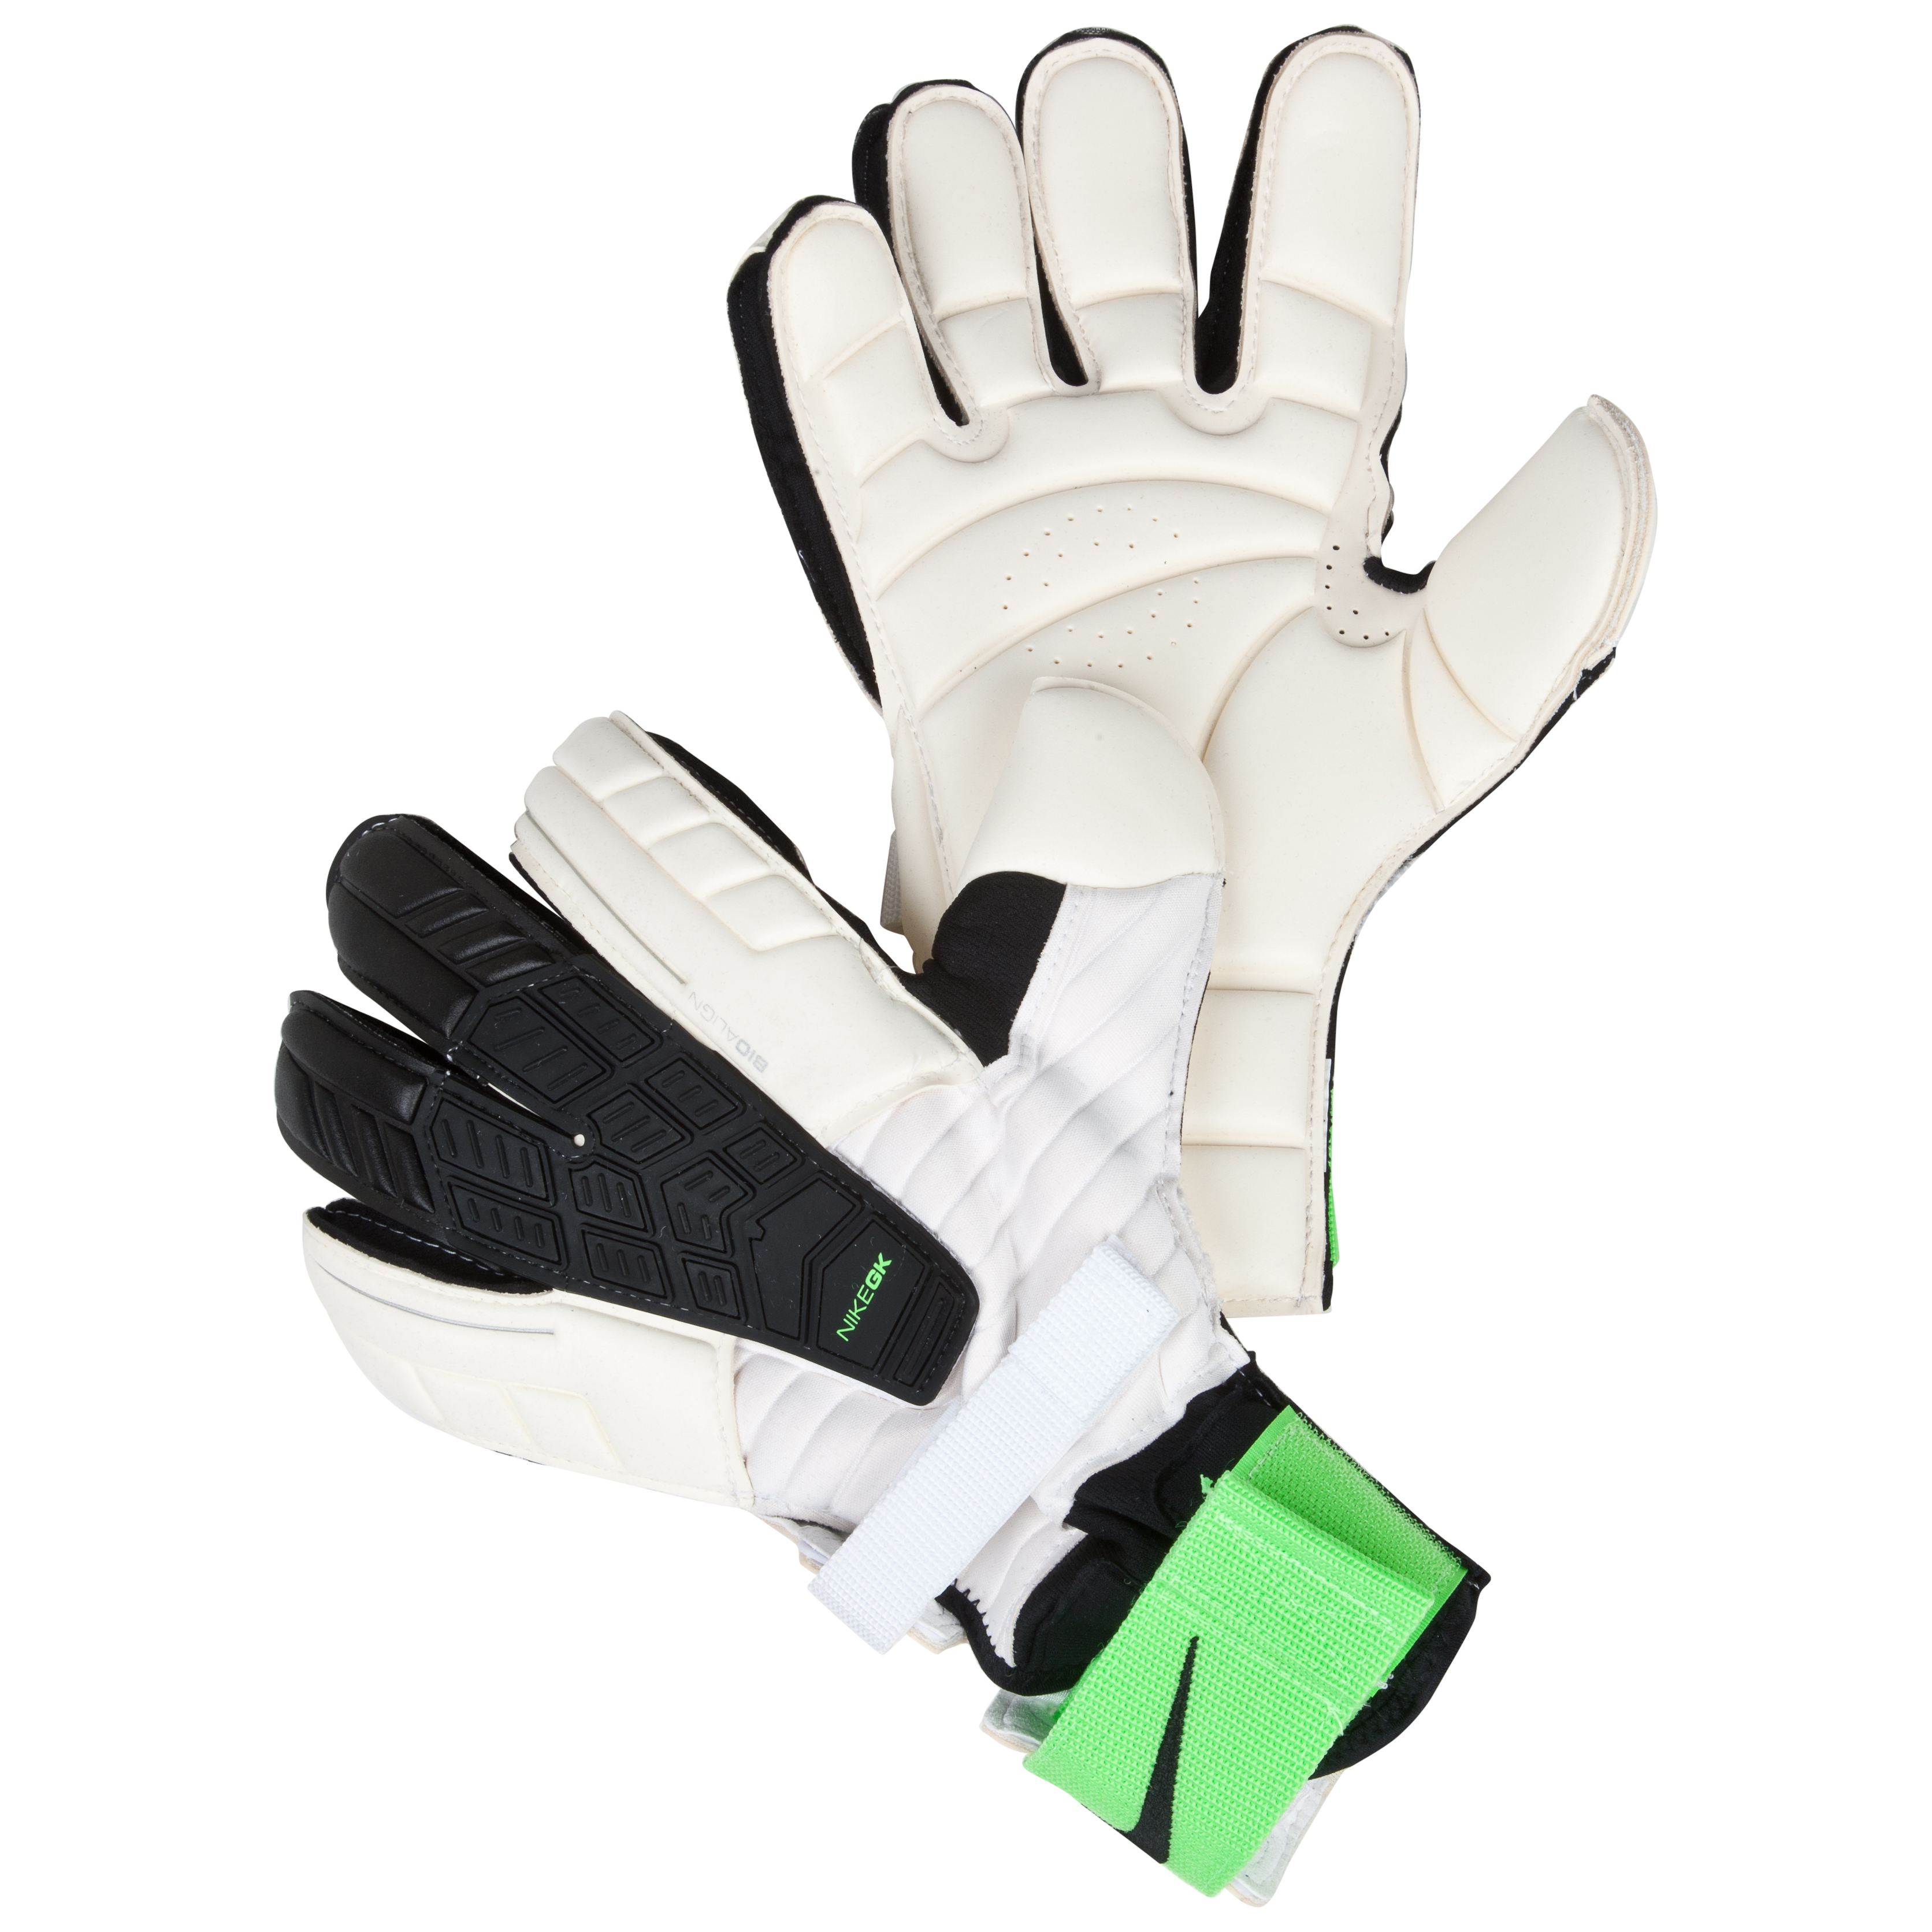 Nike Confidence Goalkeeper Gloves - White/Green/Black